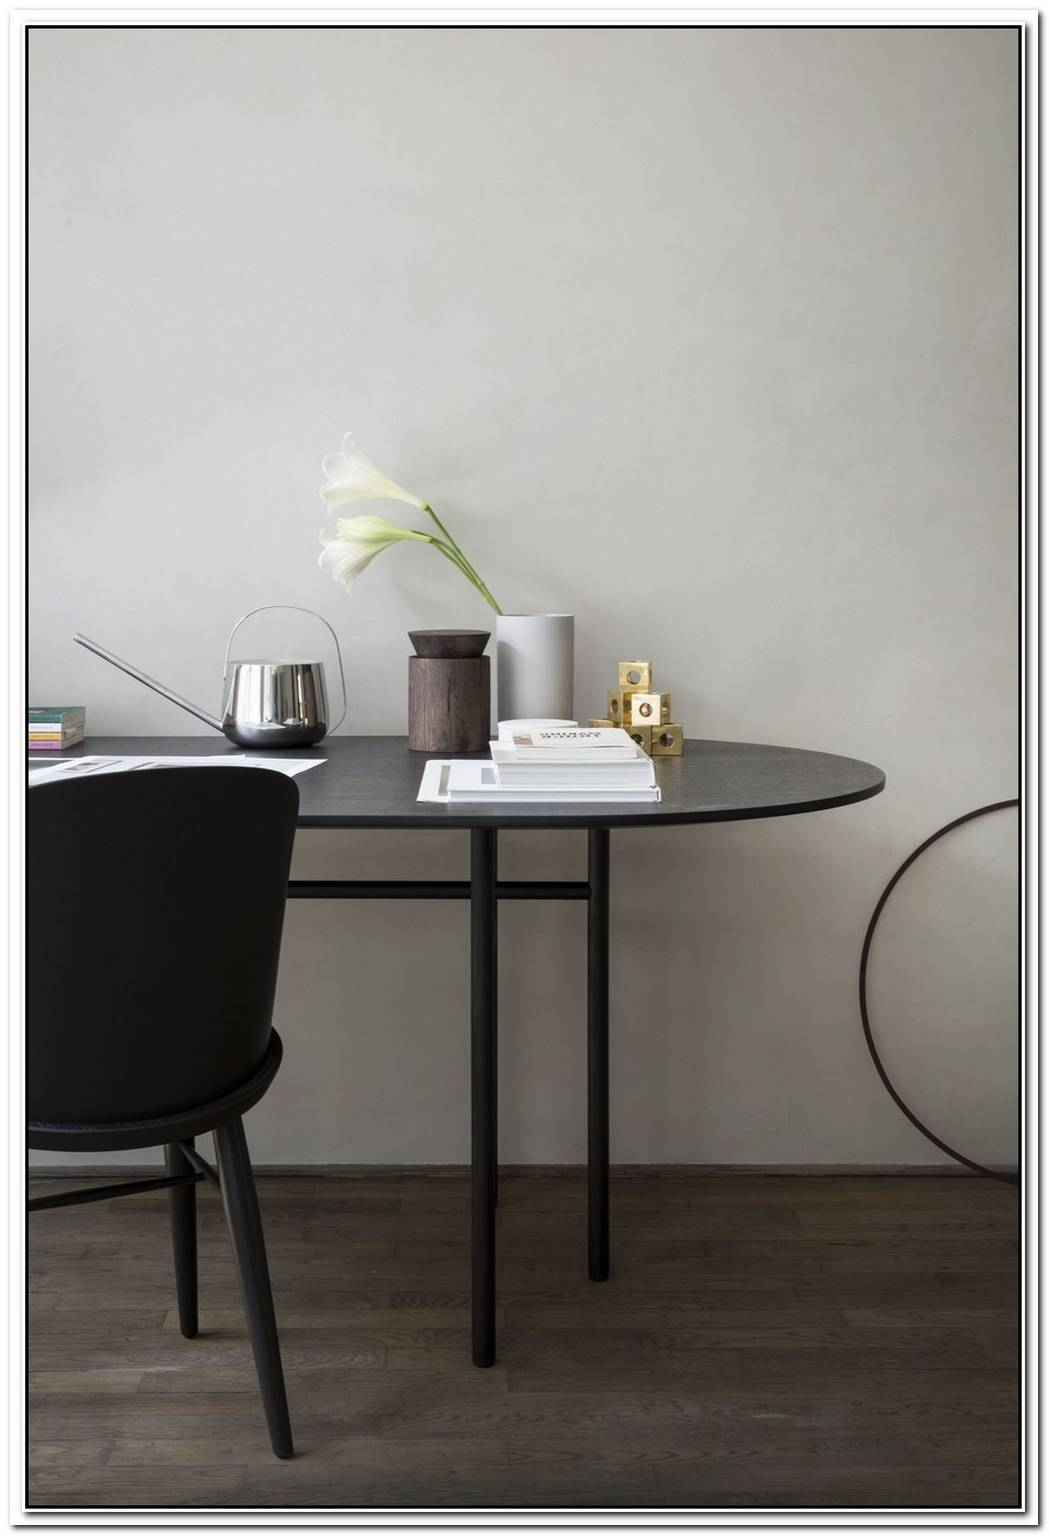 Minimalist Table By Lovely Label